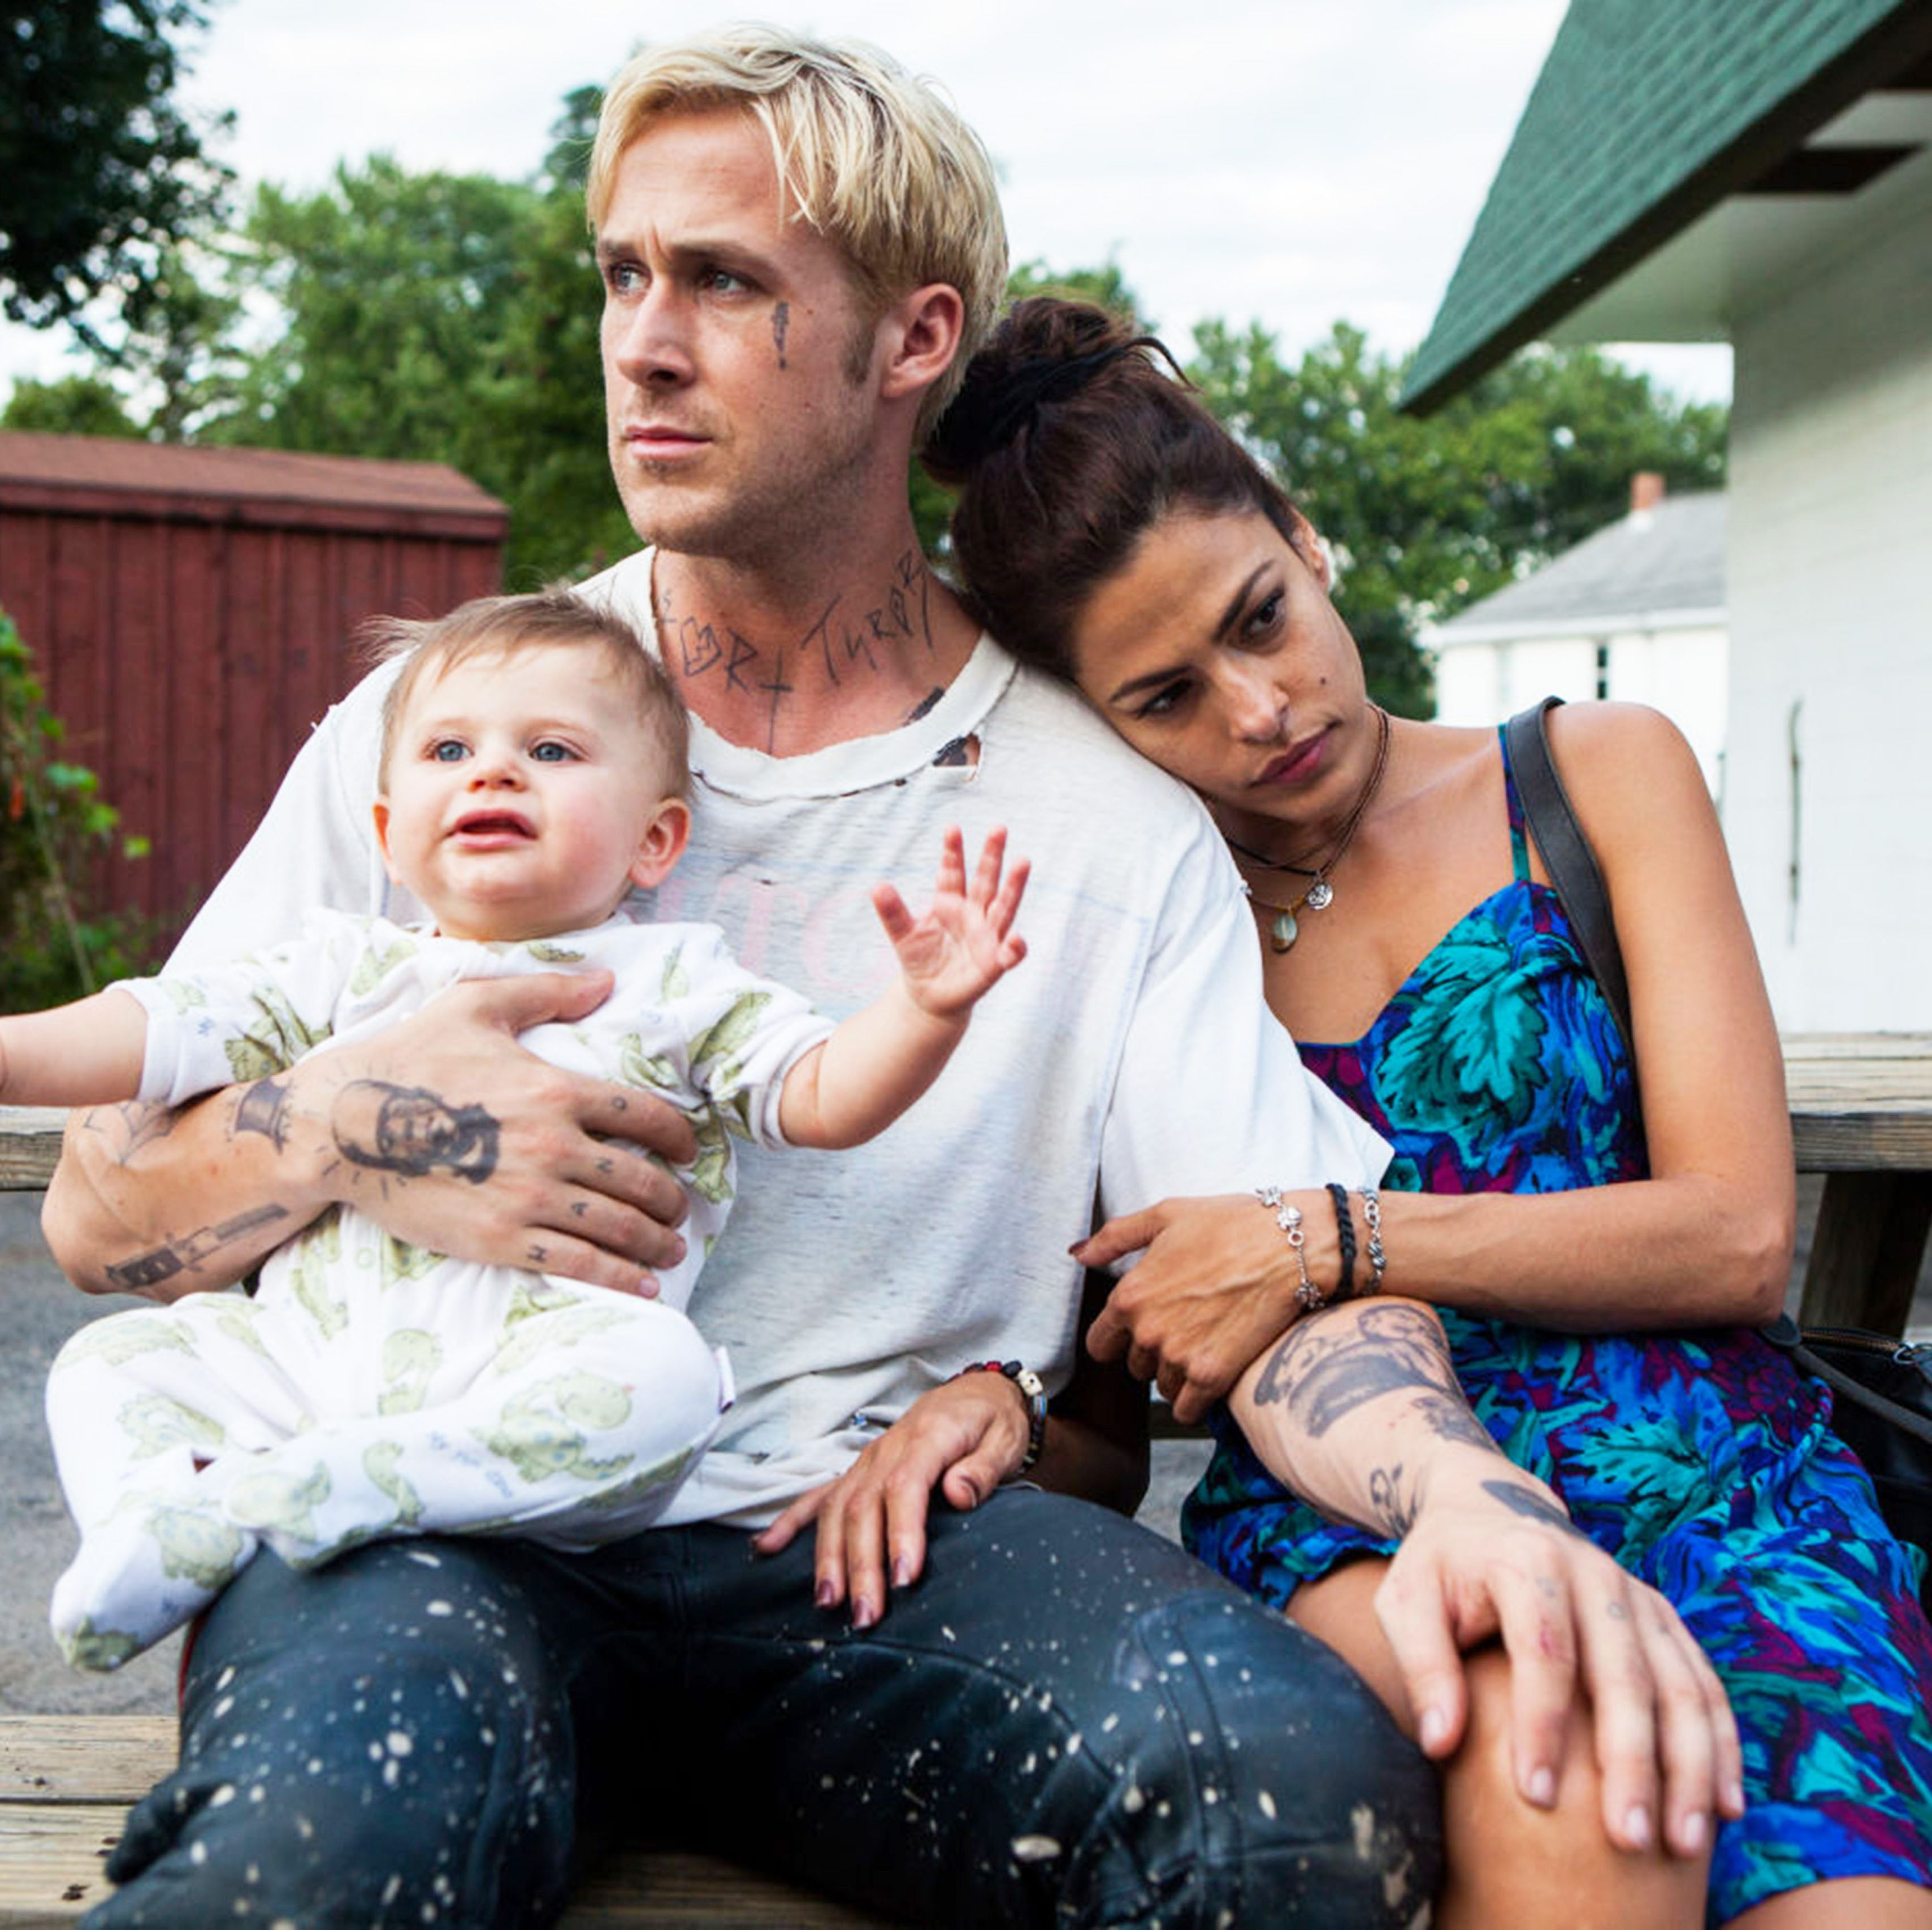 Eva Mendes, McHappy Day 2020, interview, Ryan Gosling, The Place Beyond The Pines, 2012